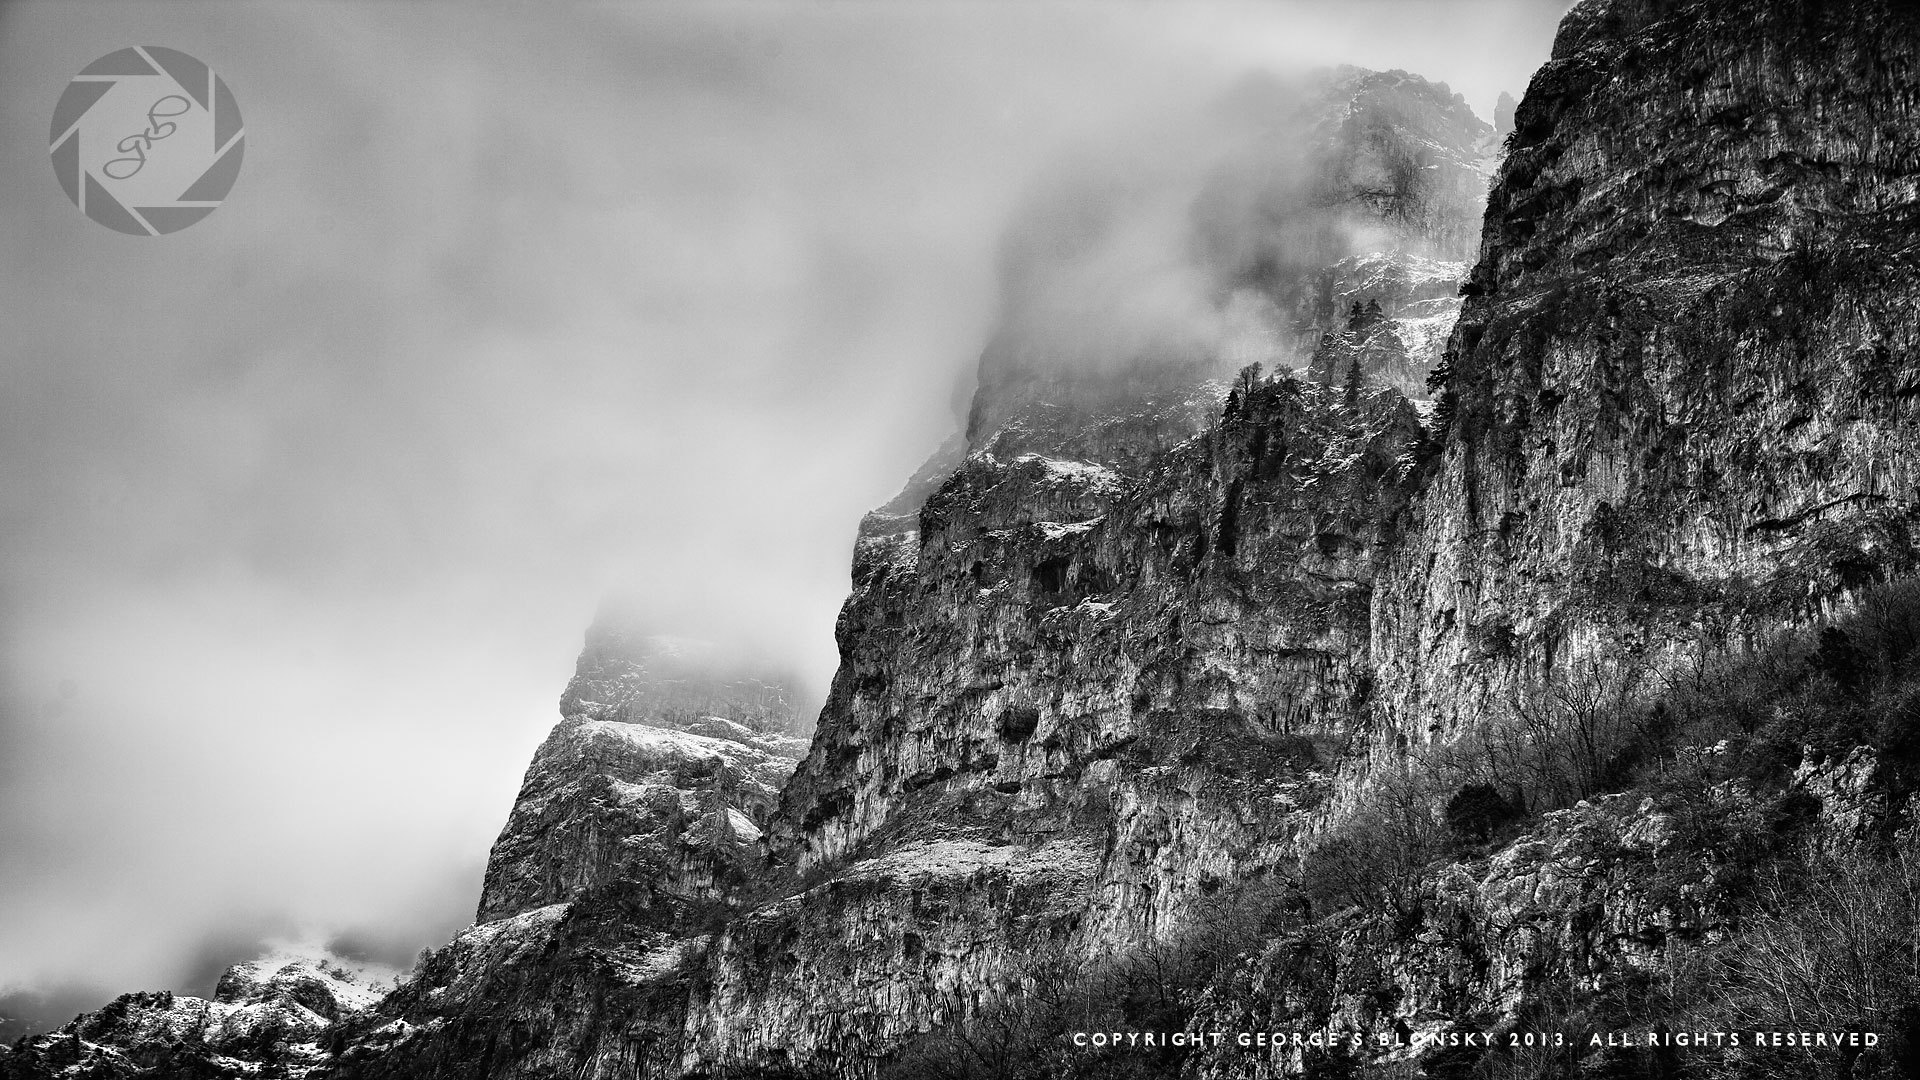 Photograph of Mount Tymfis made during one of our winter landscape photography workshops to Meteora and Western Epirus